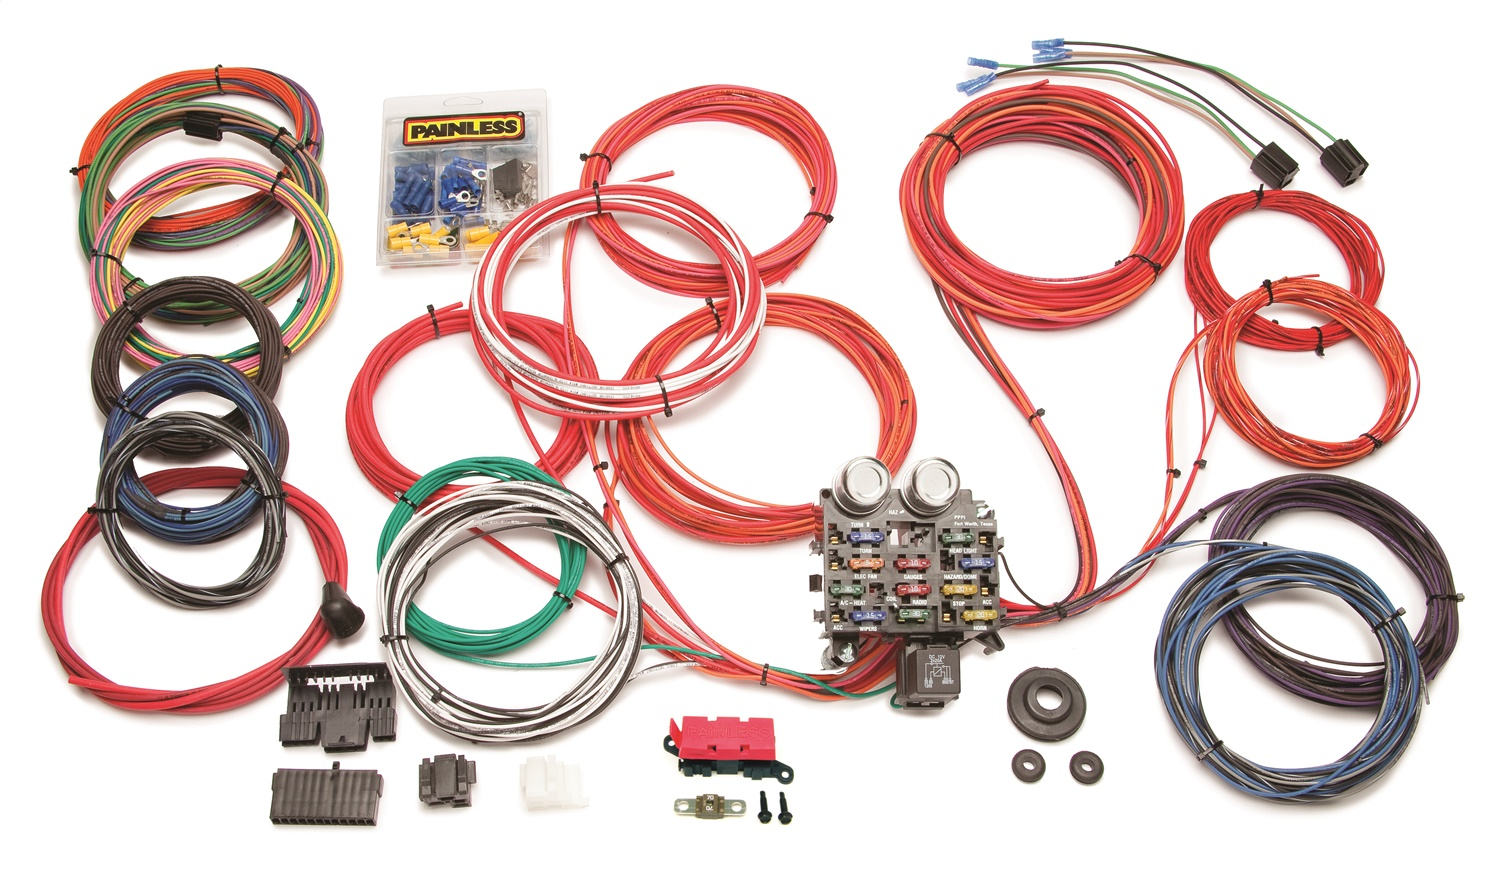 i just installed a painless wiring harness along with painless wiring 10120 chassis wire harness  painless wiring 10120 chassis wire harness